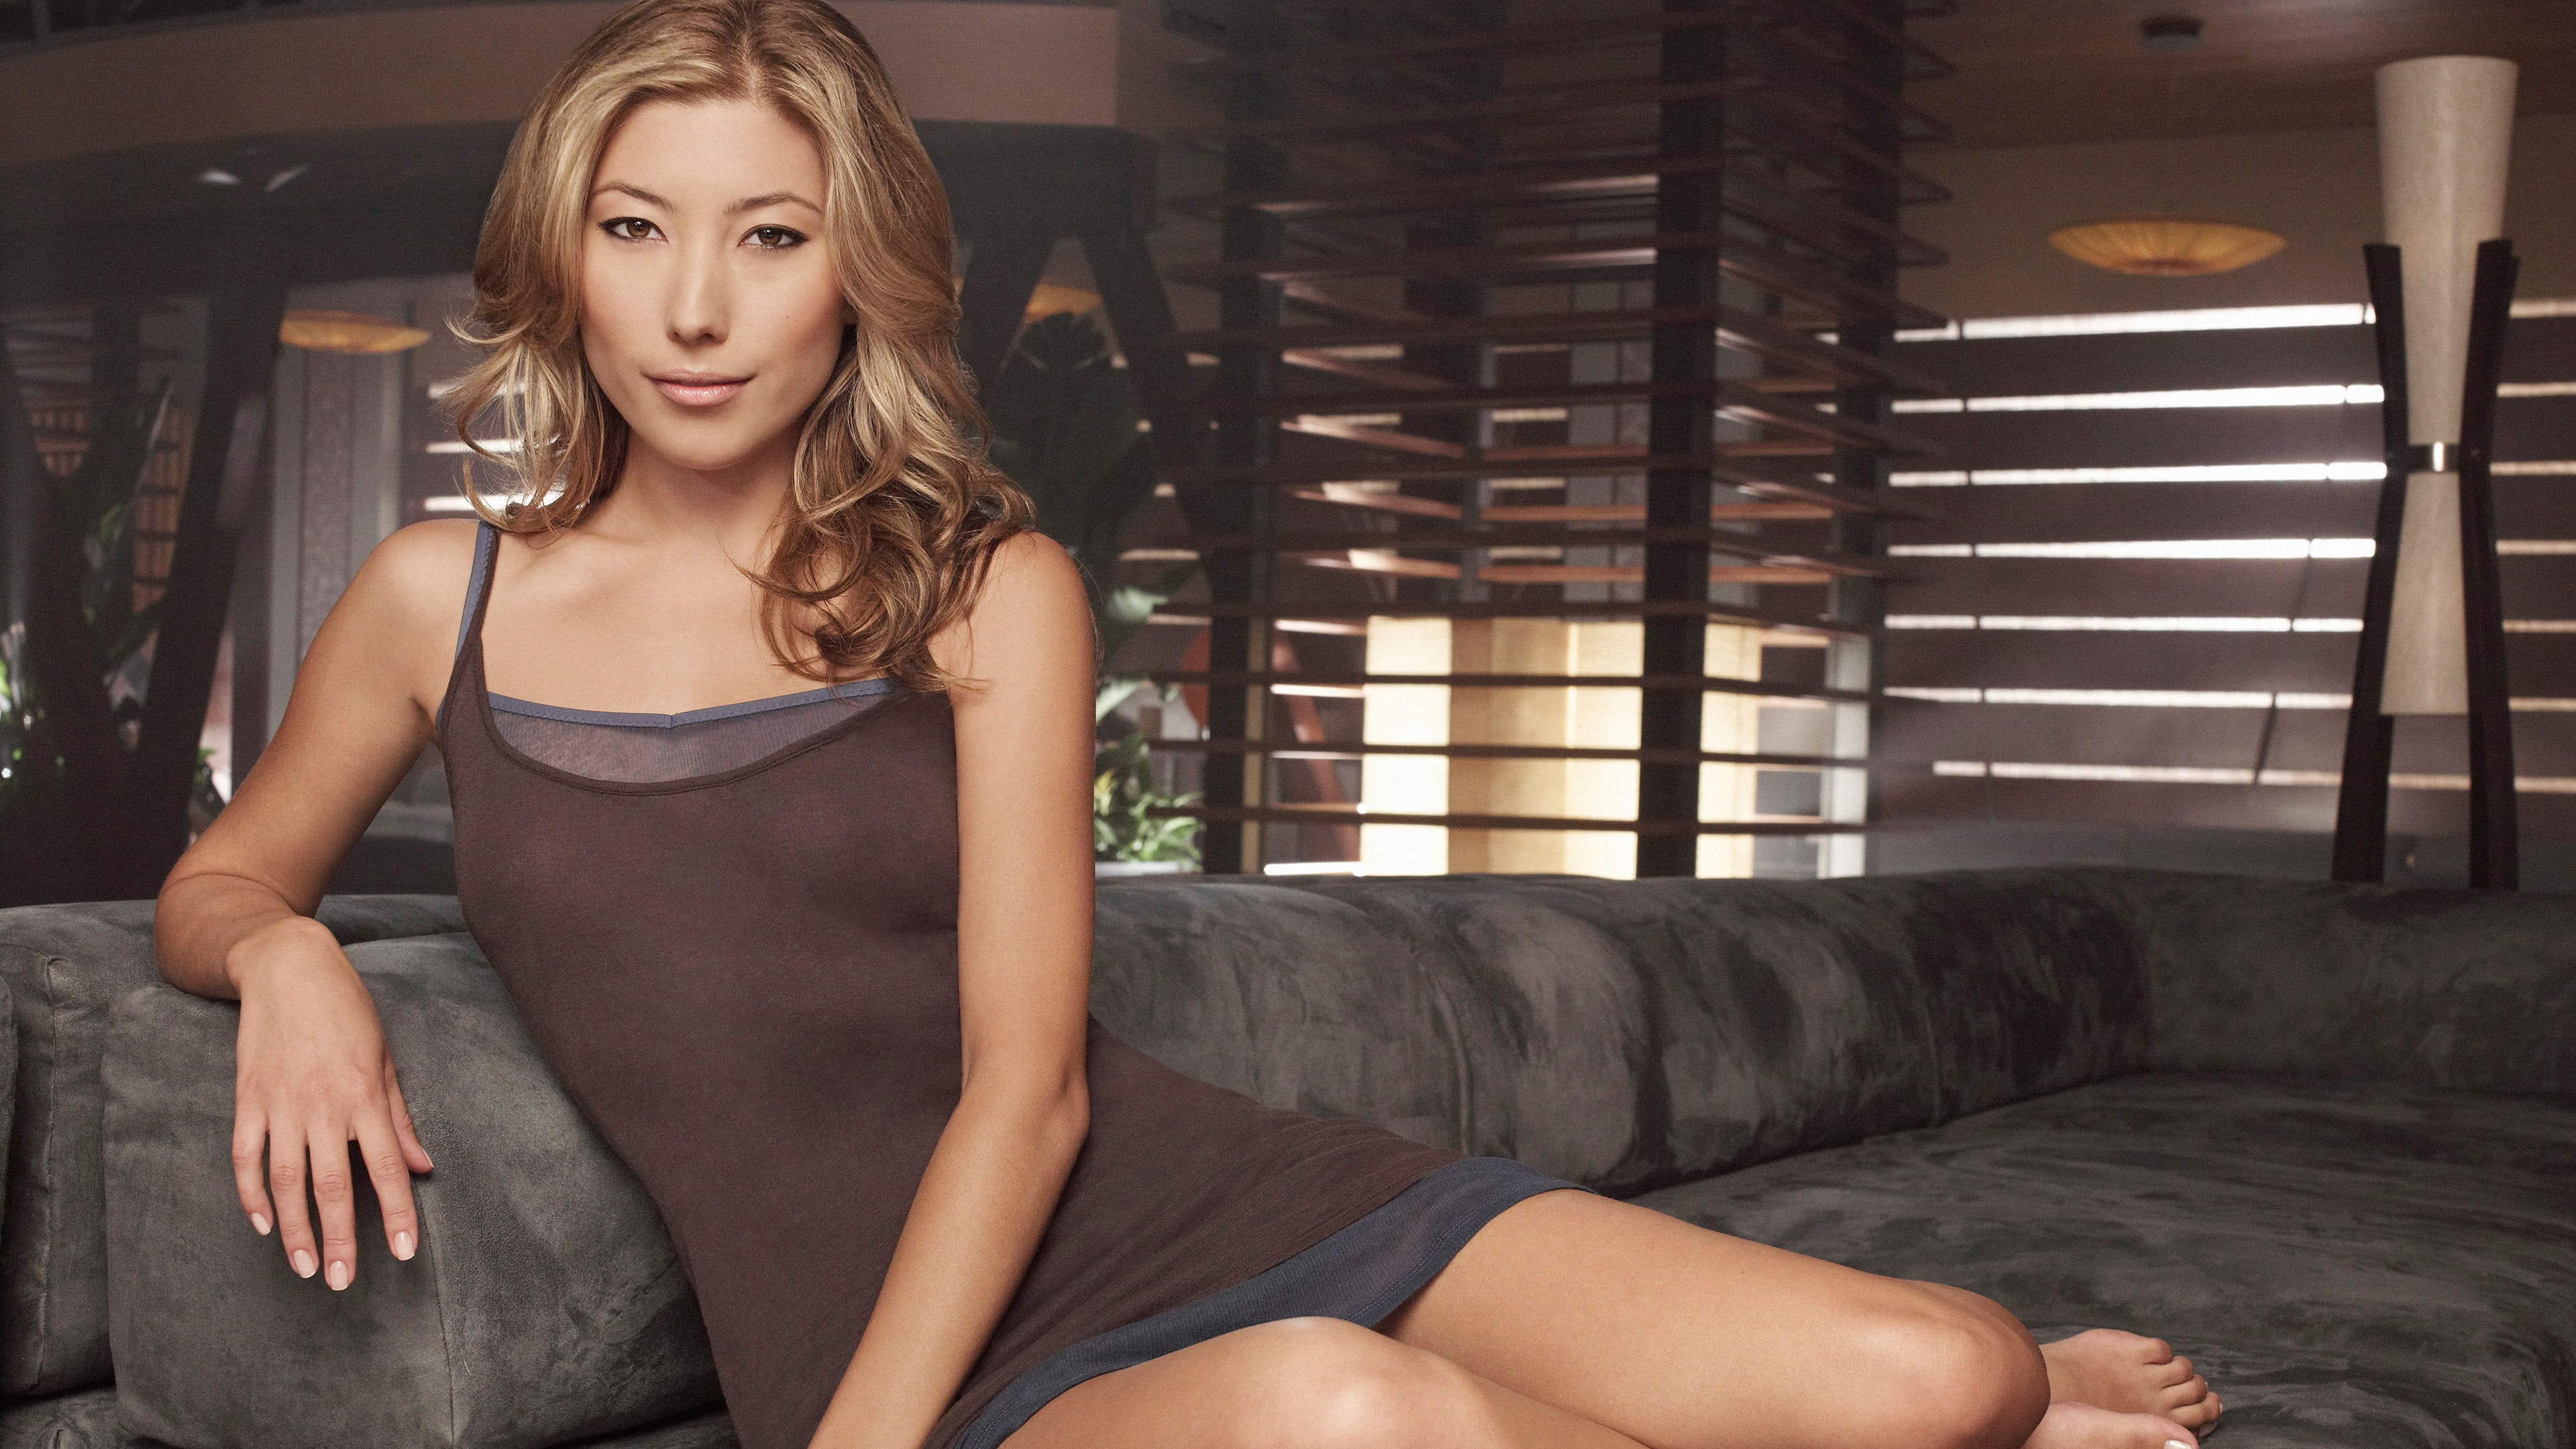 dichen lachman photoshoot uhd 4k wallpaper